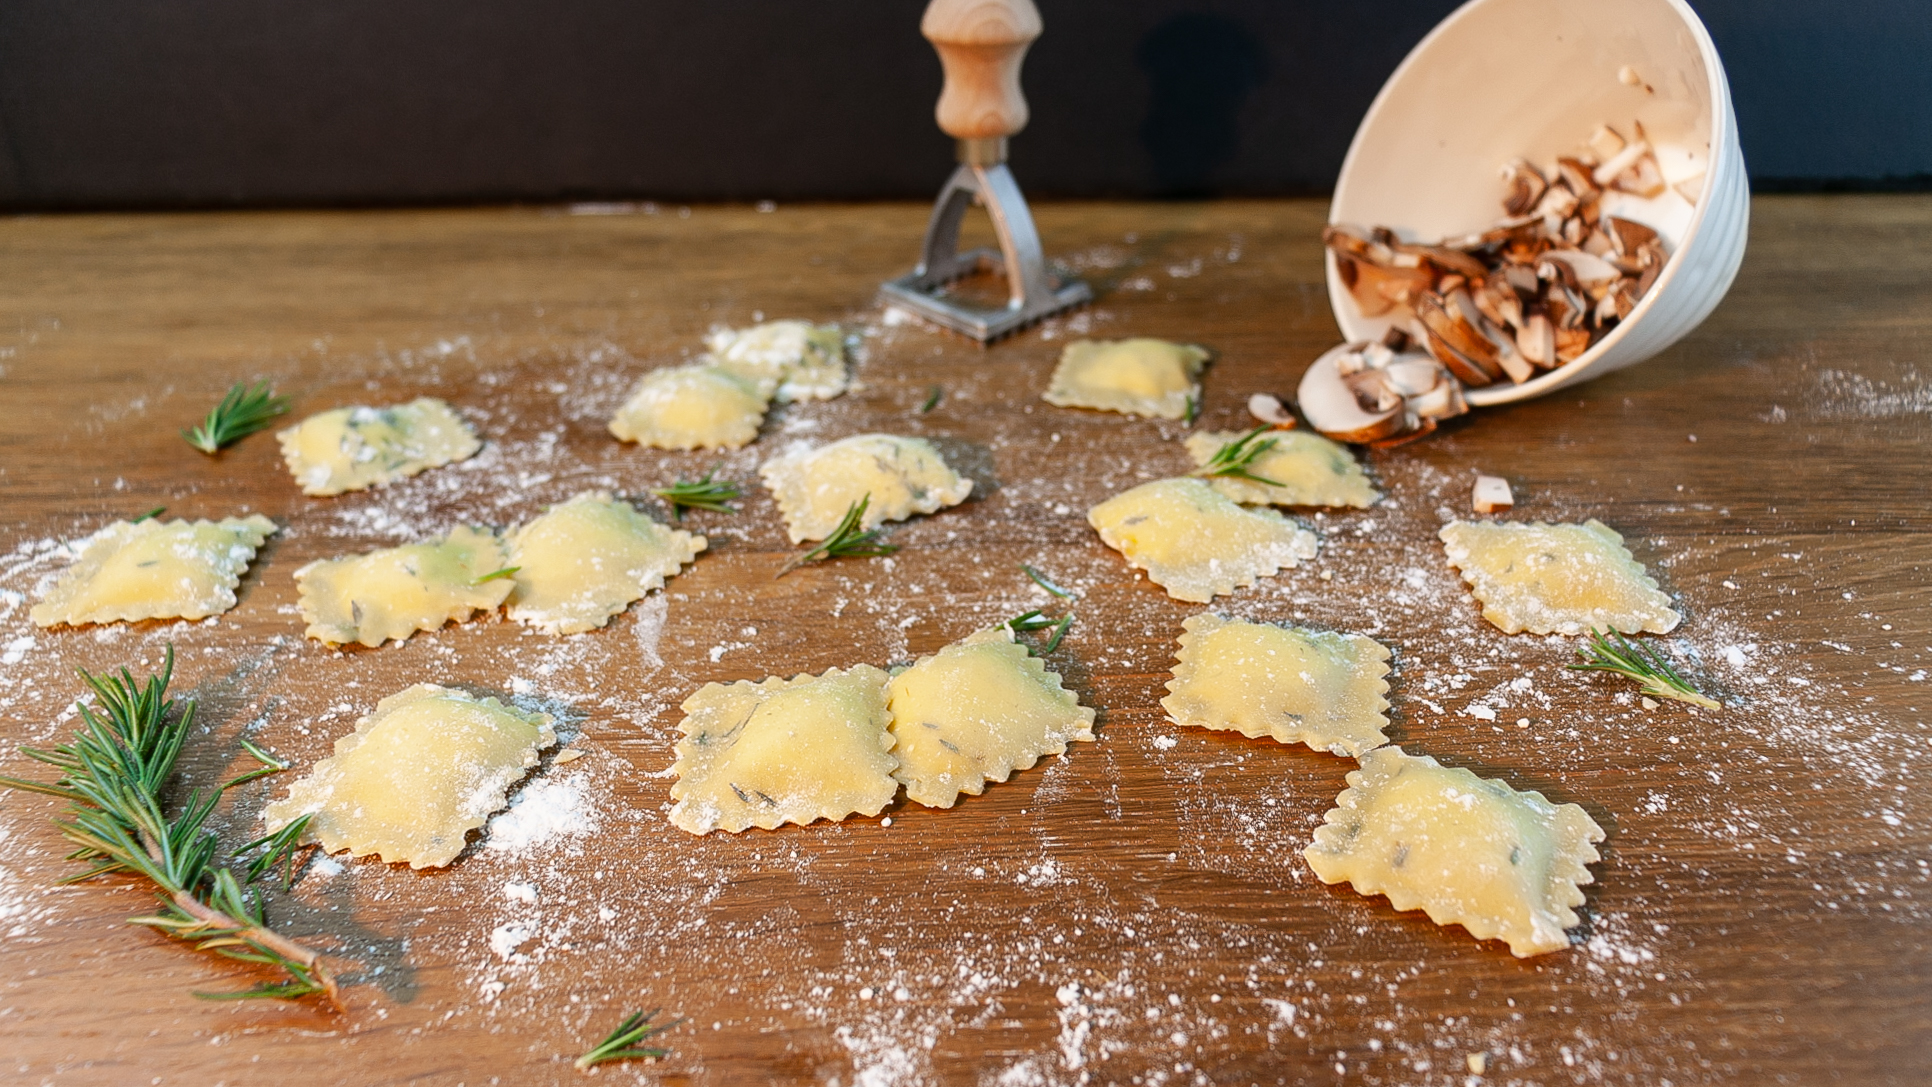 ravioli on cutting board